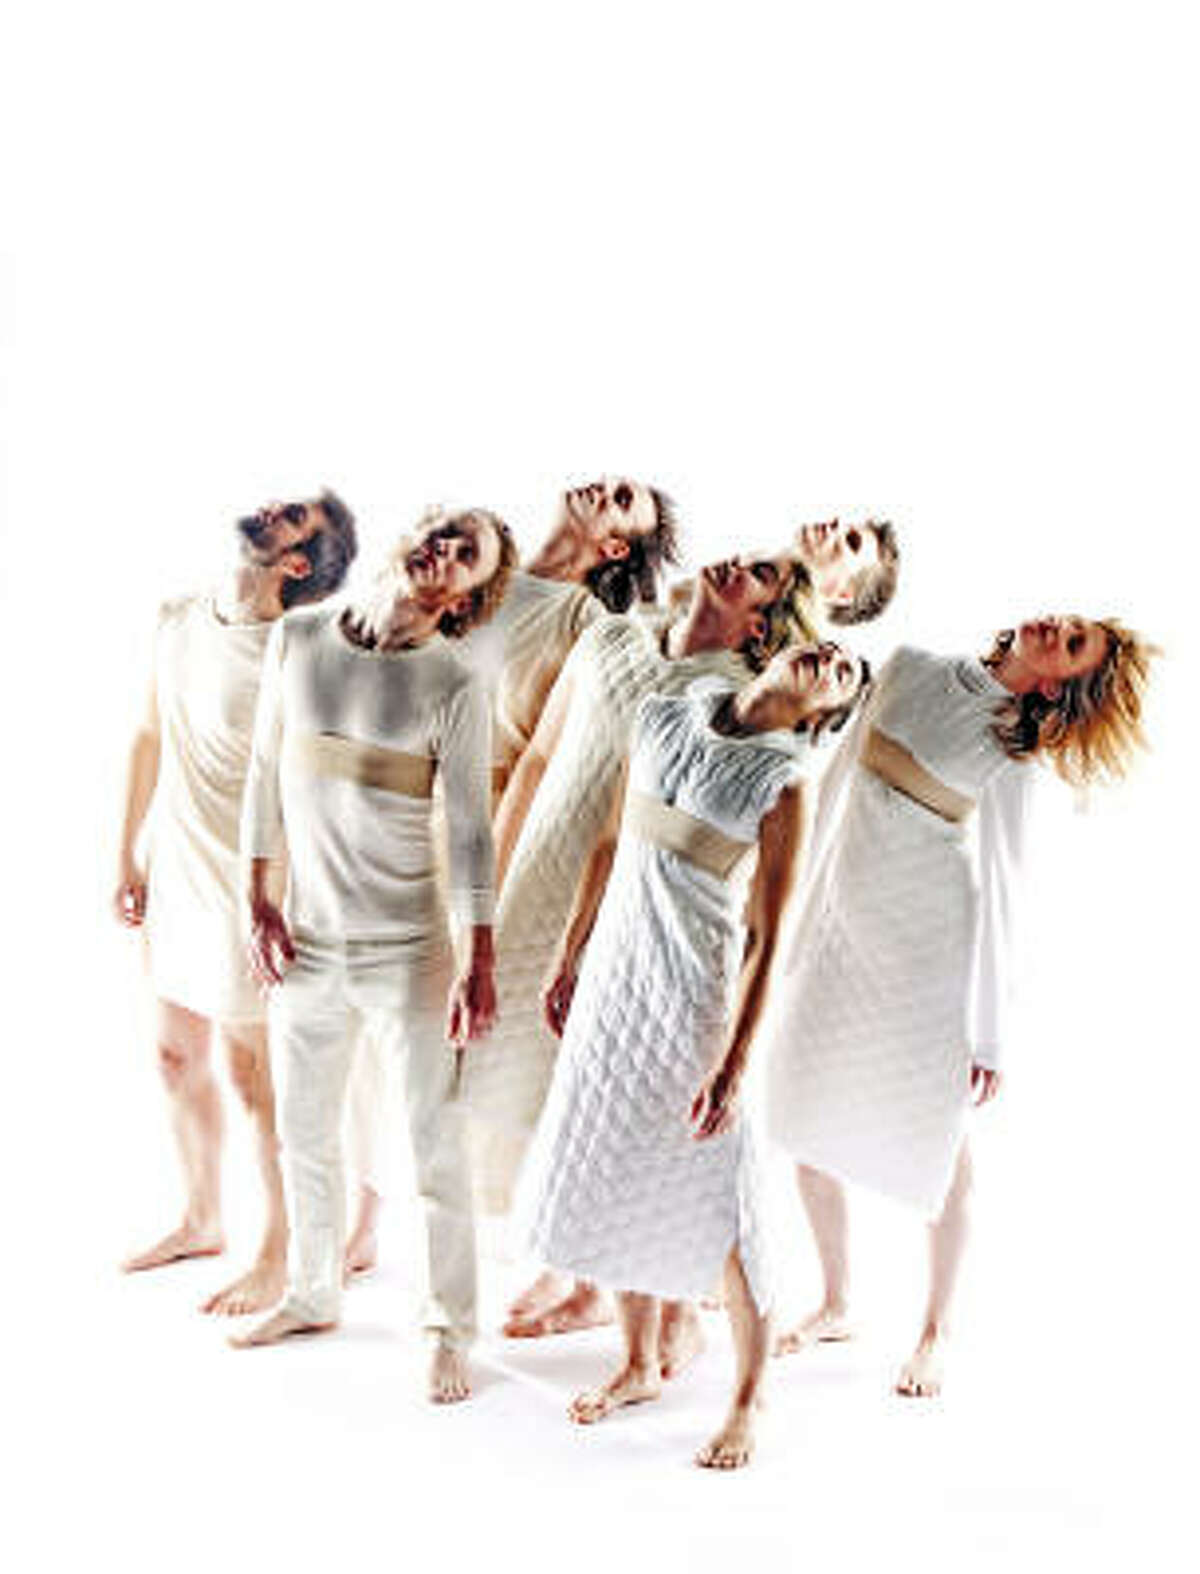 Megan Thorson's Heaven, an ensemble dance and vocal music performance piece that explores the idea of ecstasy (religious and otherwise) through the trinity of dance, music and light, premieres at DiverseWorks on Friday and Saturday. Alan Sparhawk and Mimi Parker of the Indie band Low provide the music.